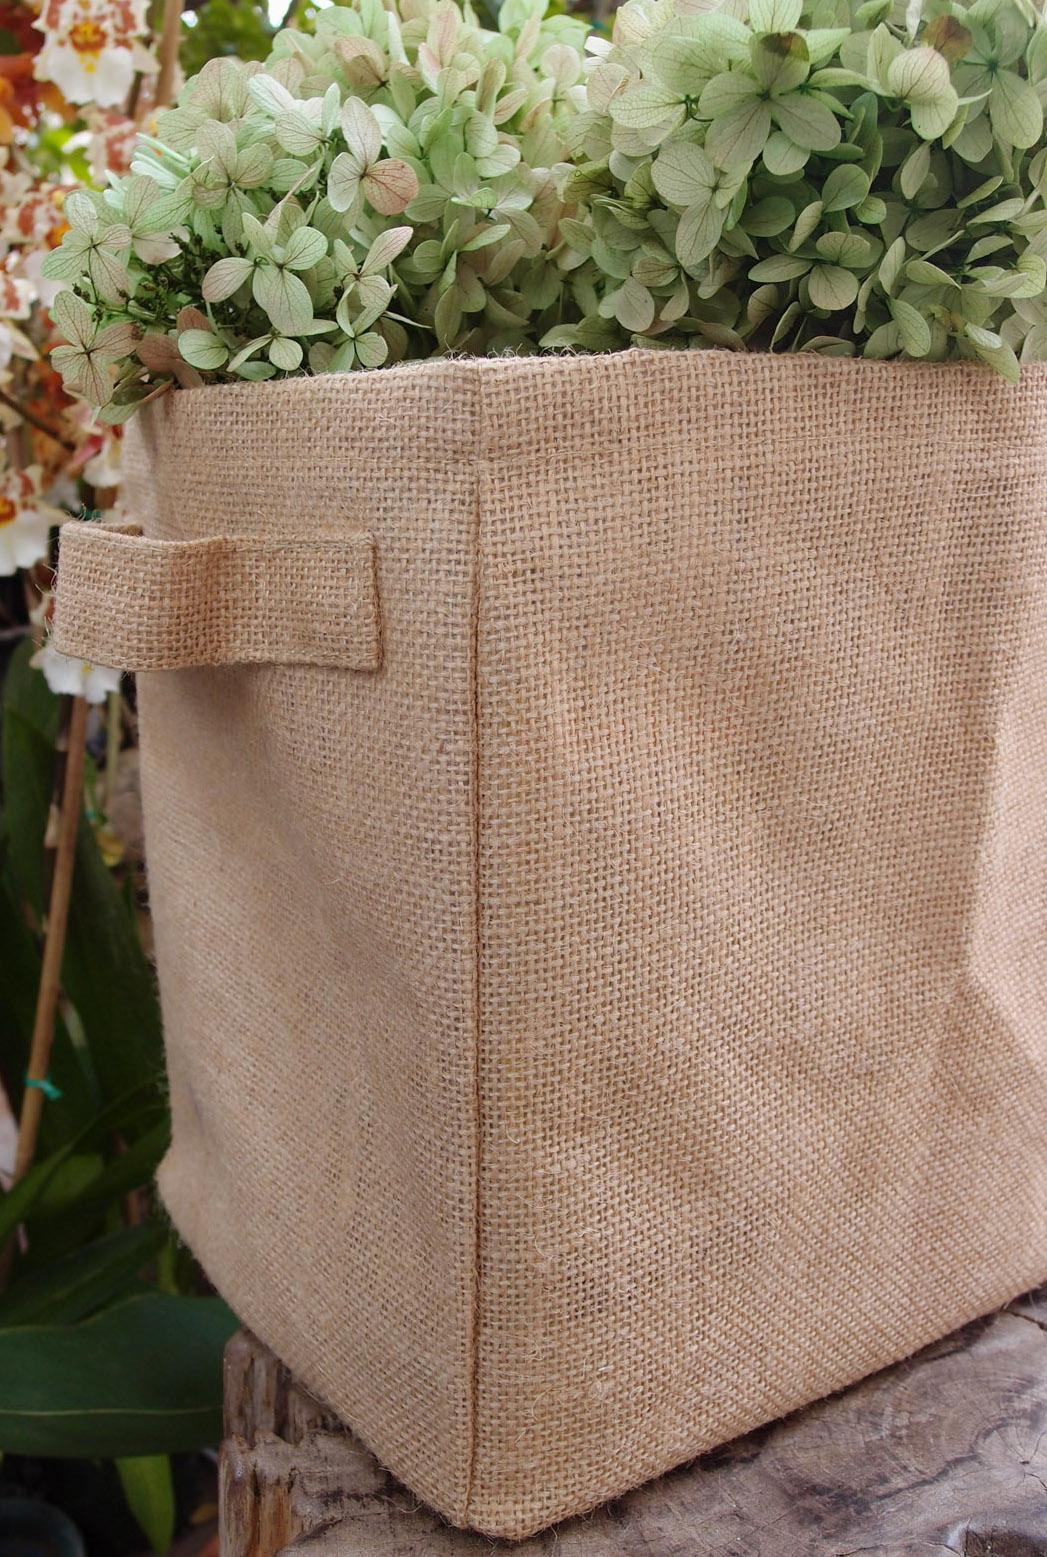 6 Burlap Storage Bags, Gift Basket Bag 9""